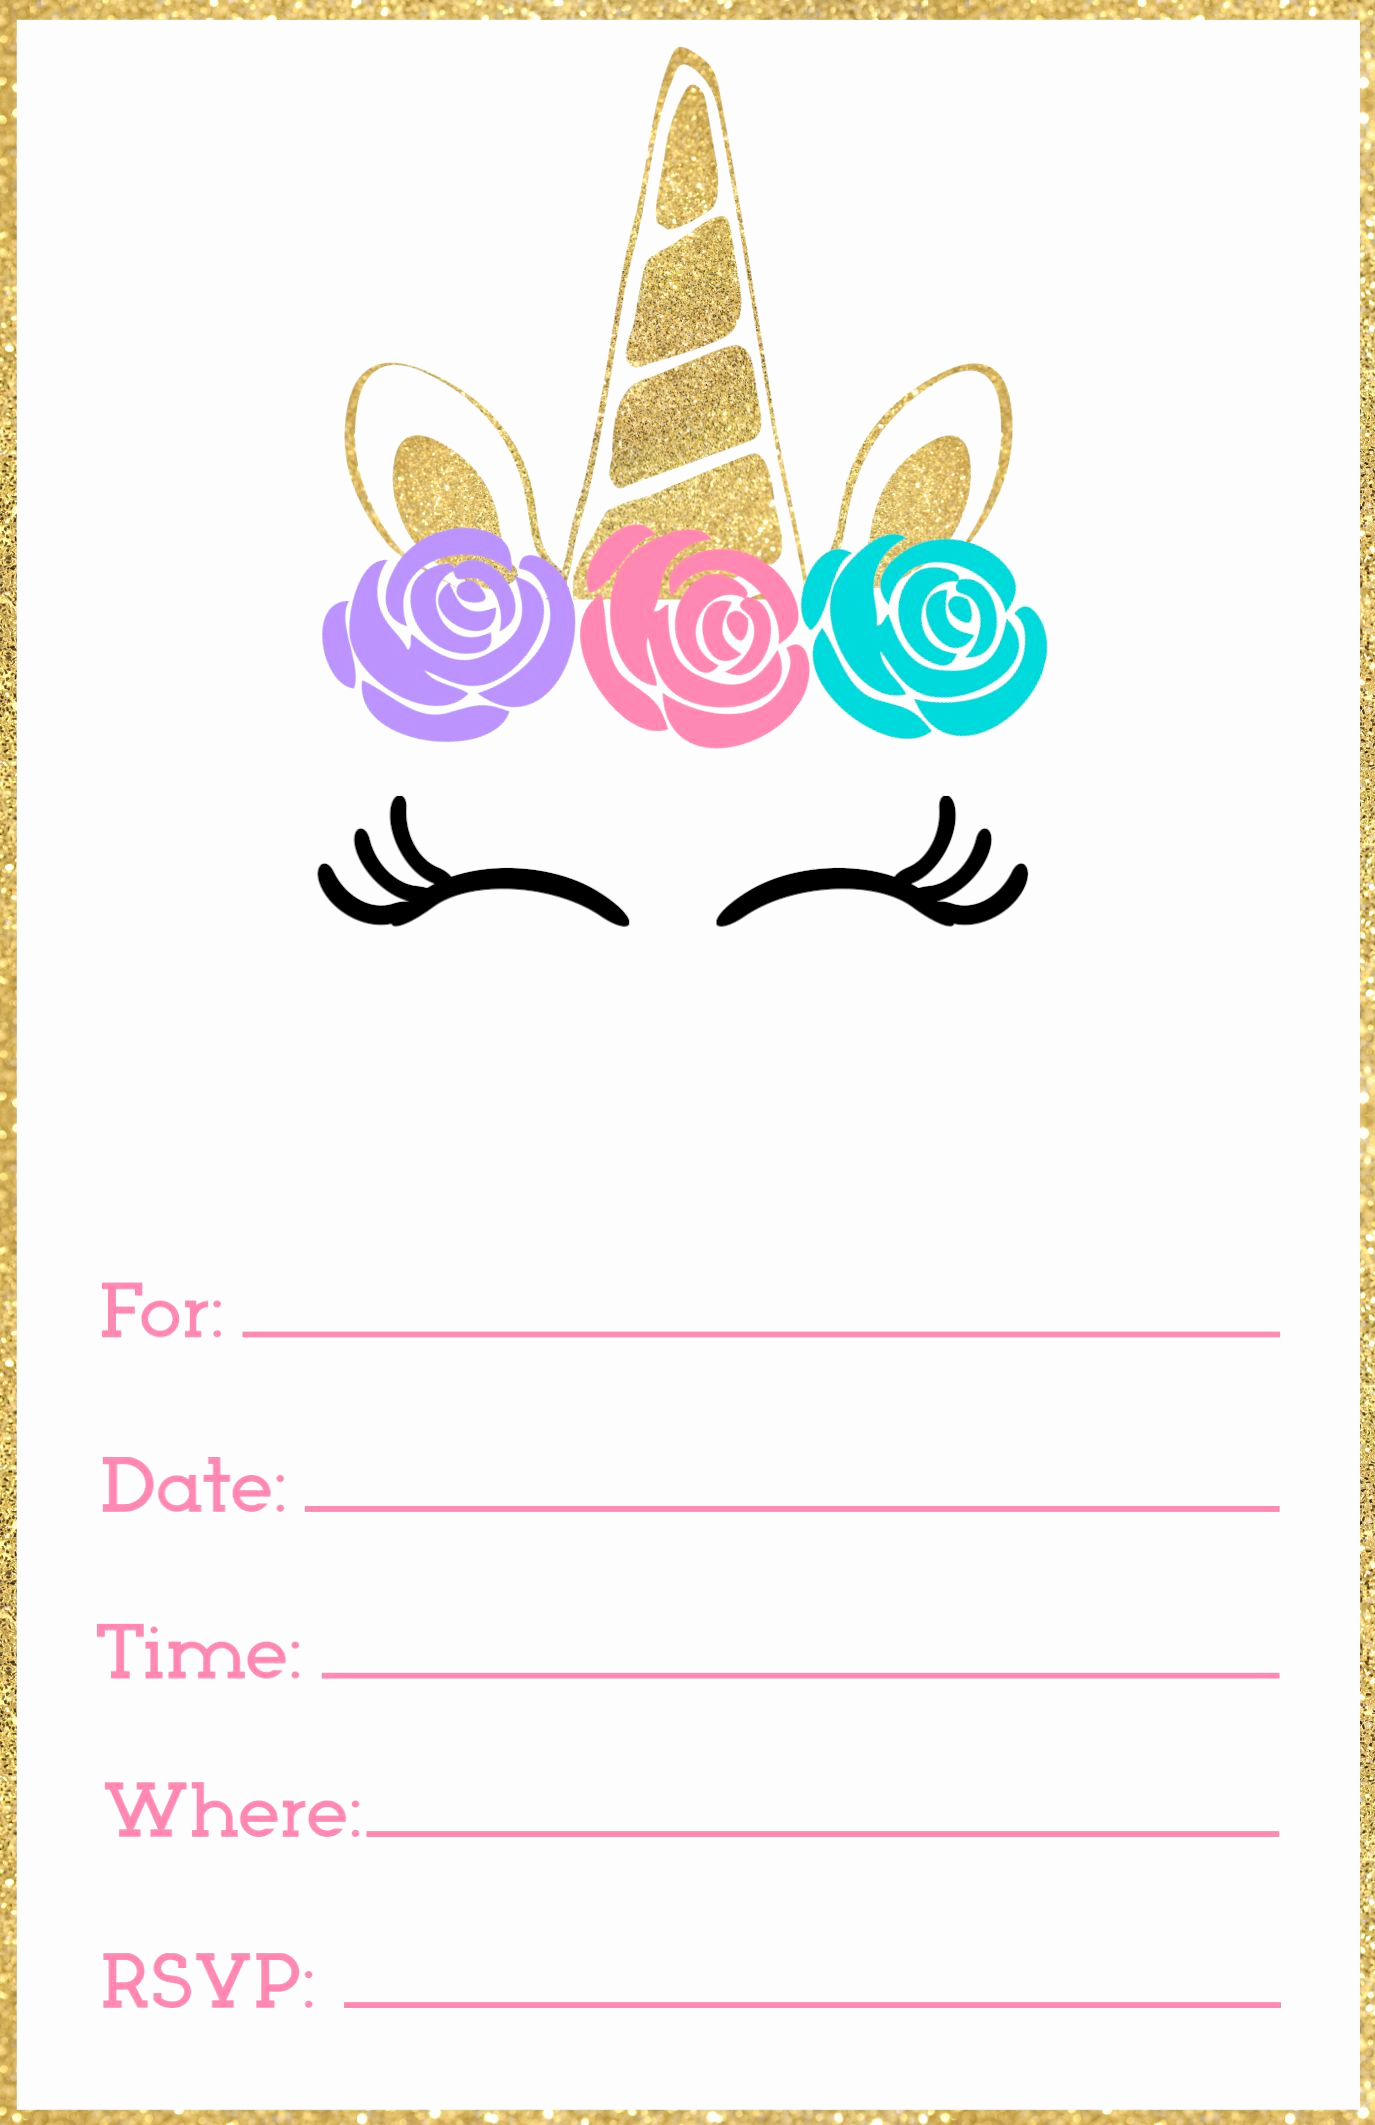 Unicorn Birthday Invitation Template Unique Pin by Cindy Lopez On All My Favorite Things In 2019